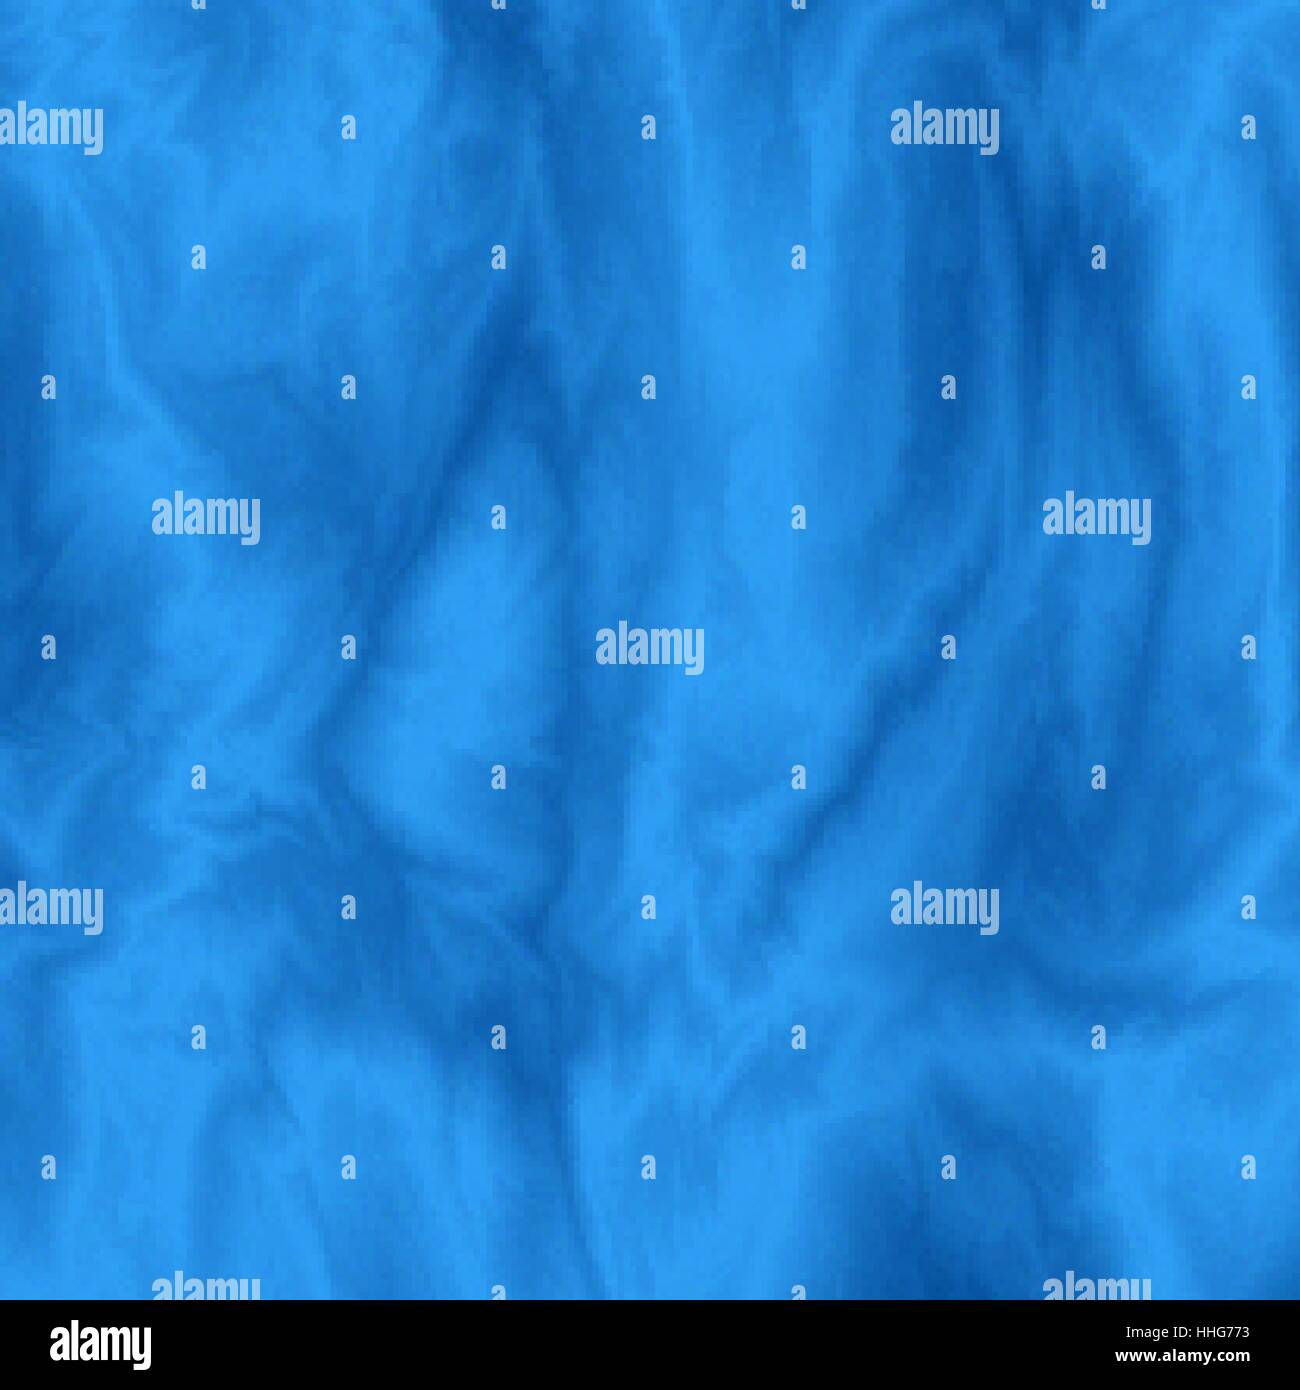 Background image overflow - Abstract Blue Silky Background Cloth Wavy Colorful Texture Flowing Streamy Silk Effect Color Fabric Overflow Vector Illustration